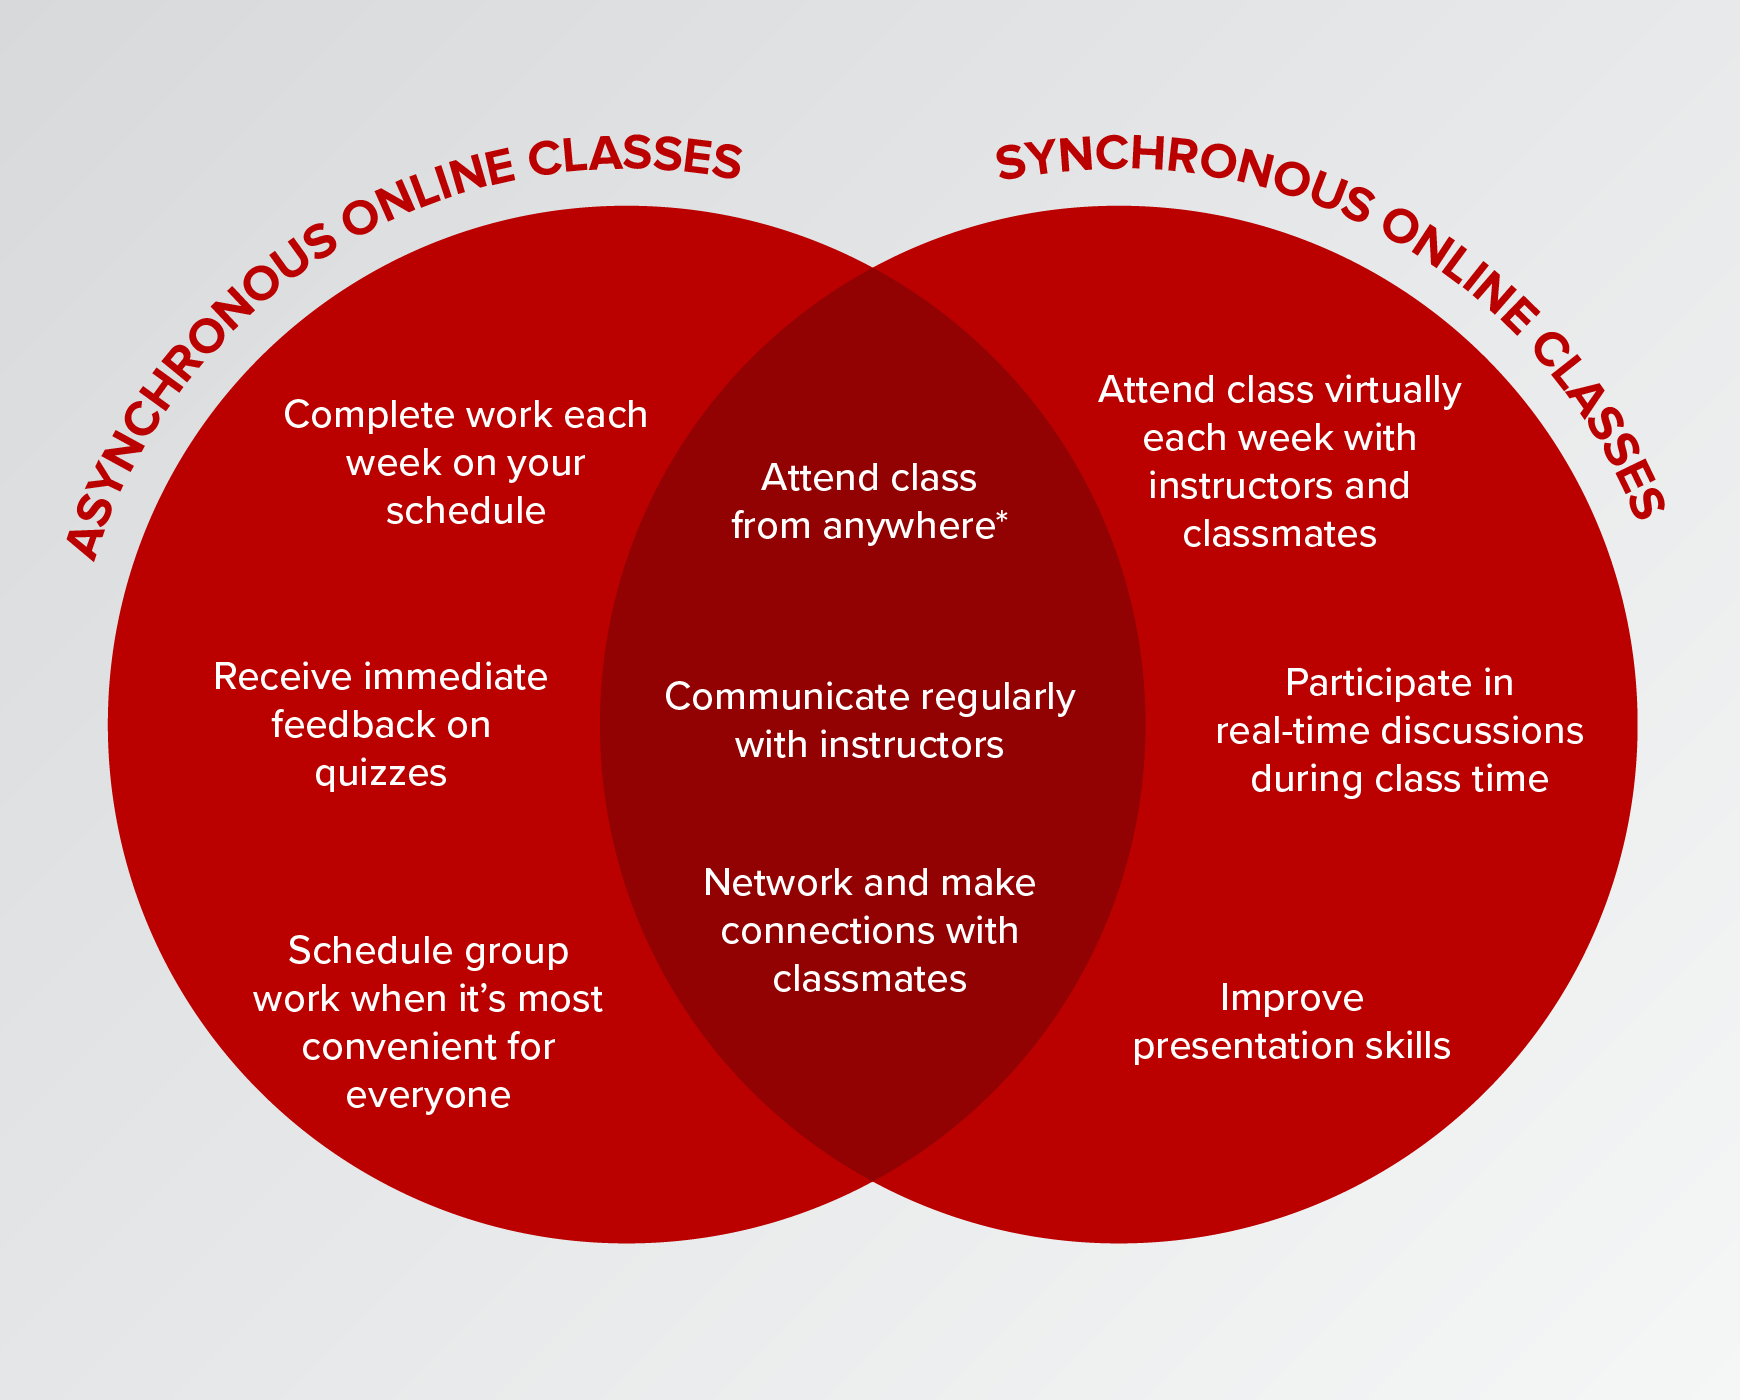 Venn diagram of acynchronous and synchronous online classes